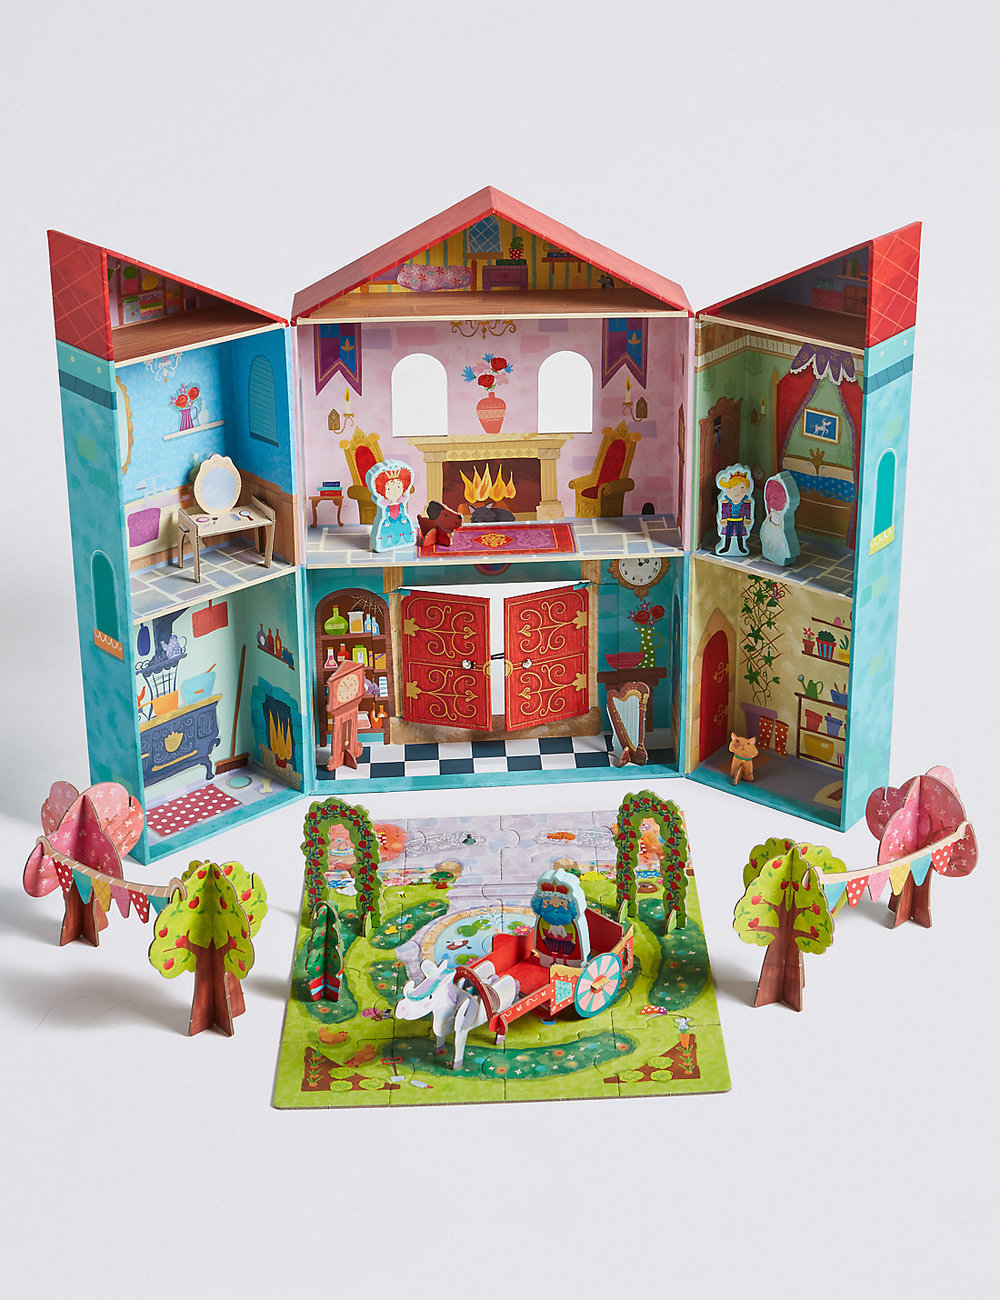 1. Princess Tower Playset